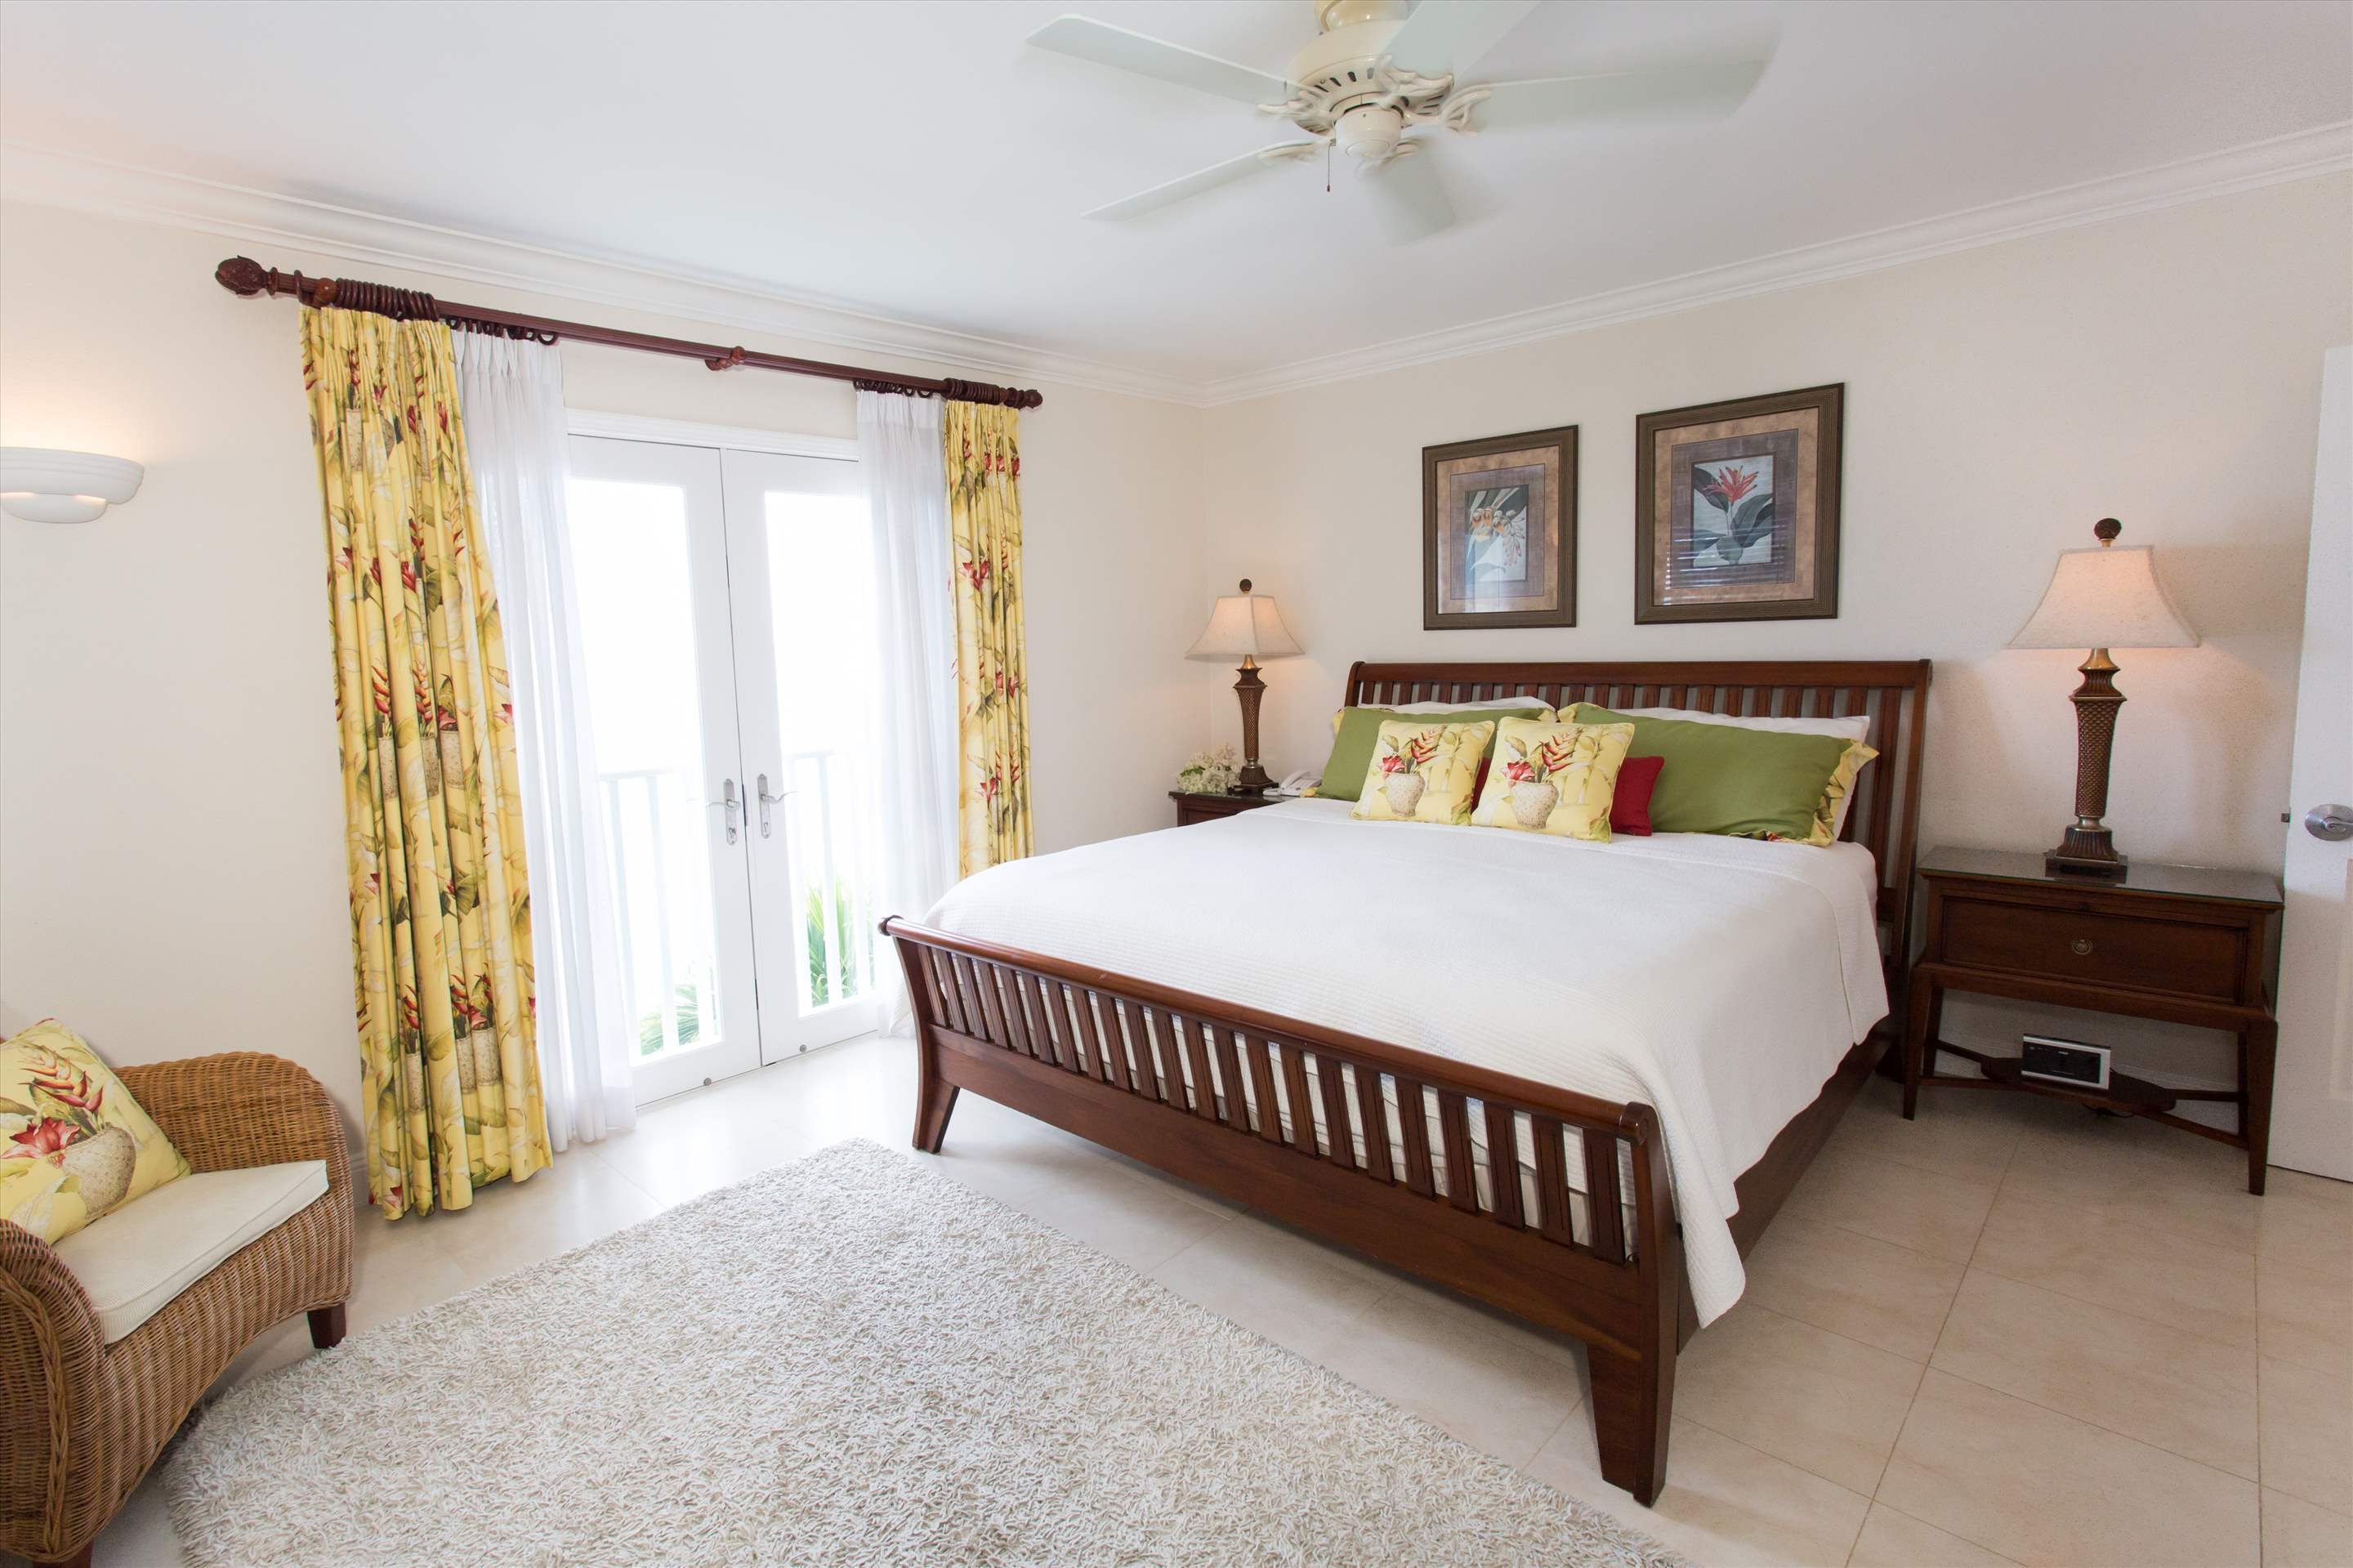 Sandy Hook 21, 2 bedroom, 2 bedroom villa in St. Lawrence Gap & South Coast, Barbados Photo #9